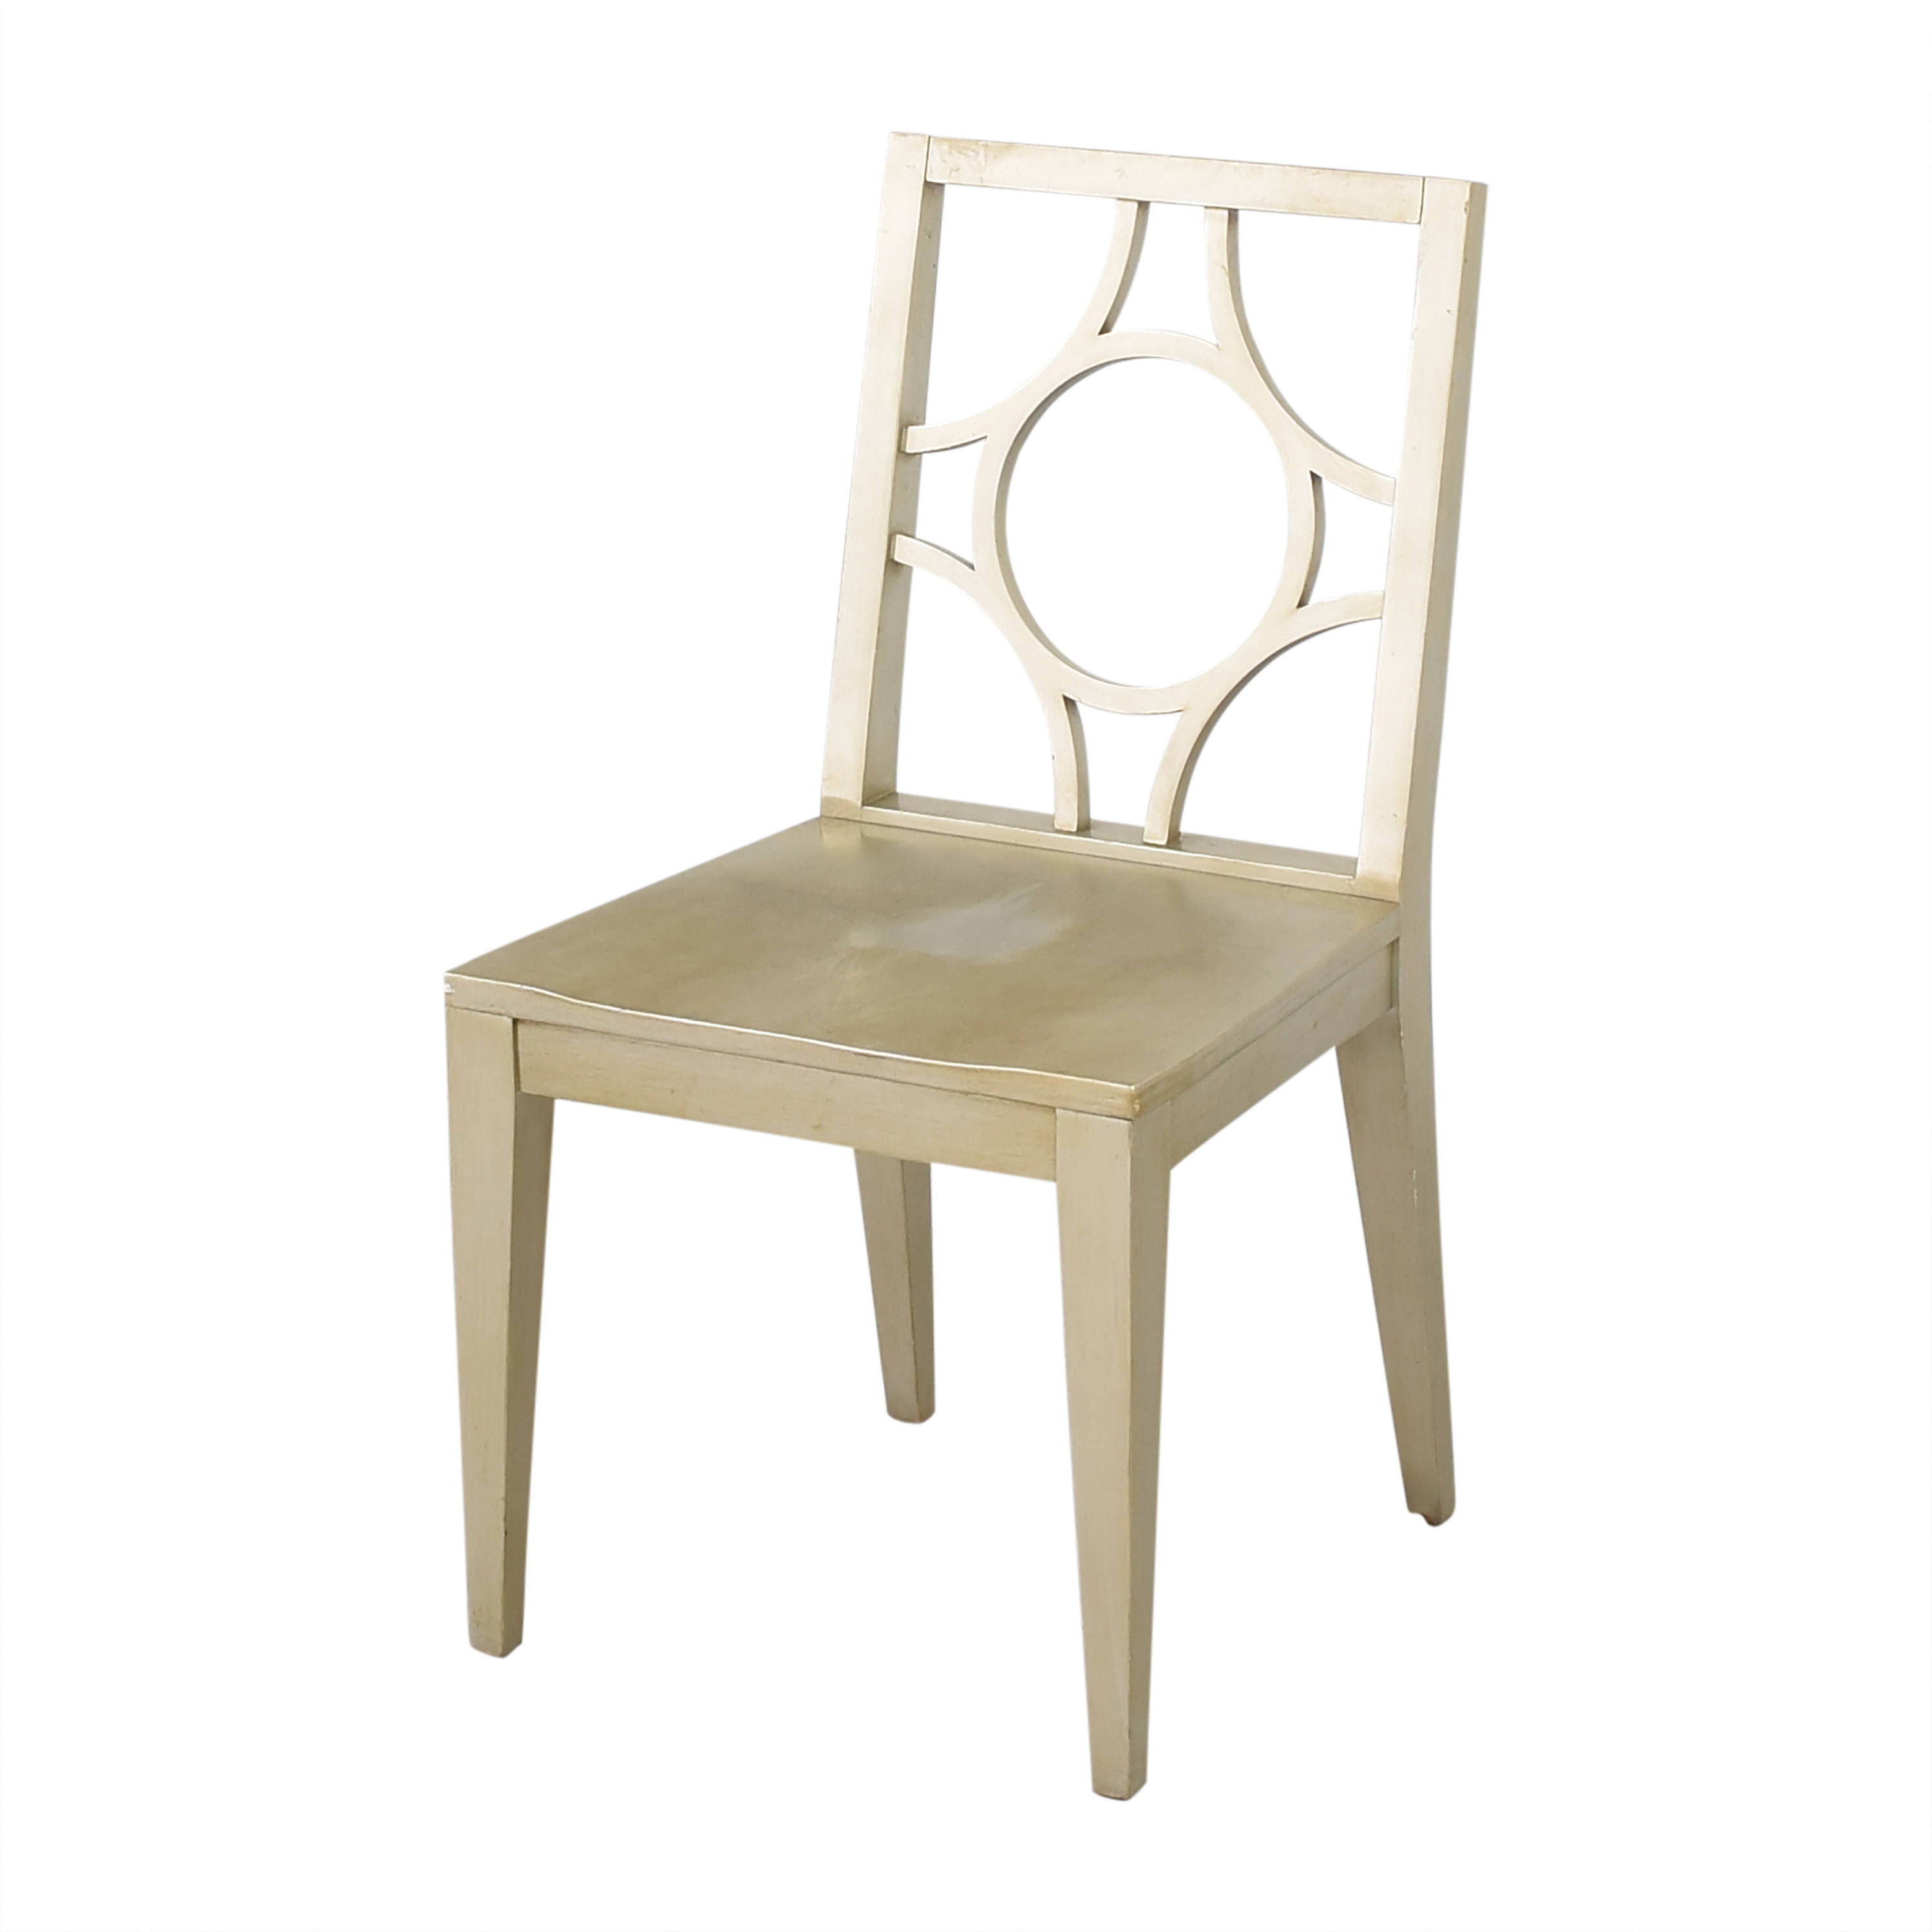 Crate & Barrel Crate & Barrel Dining Side Chairs Chairs